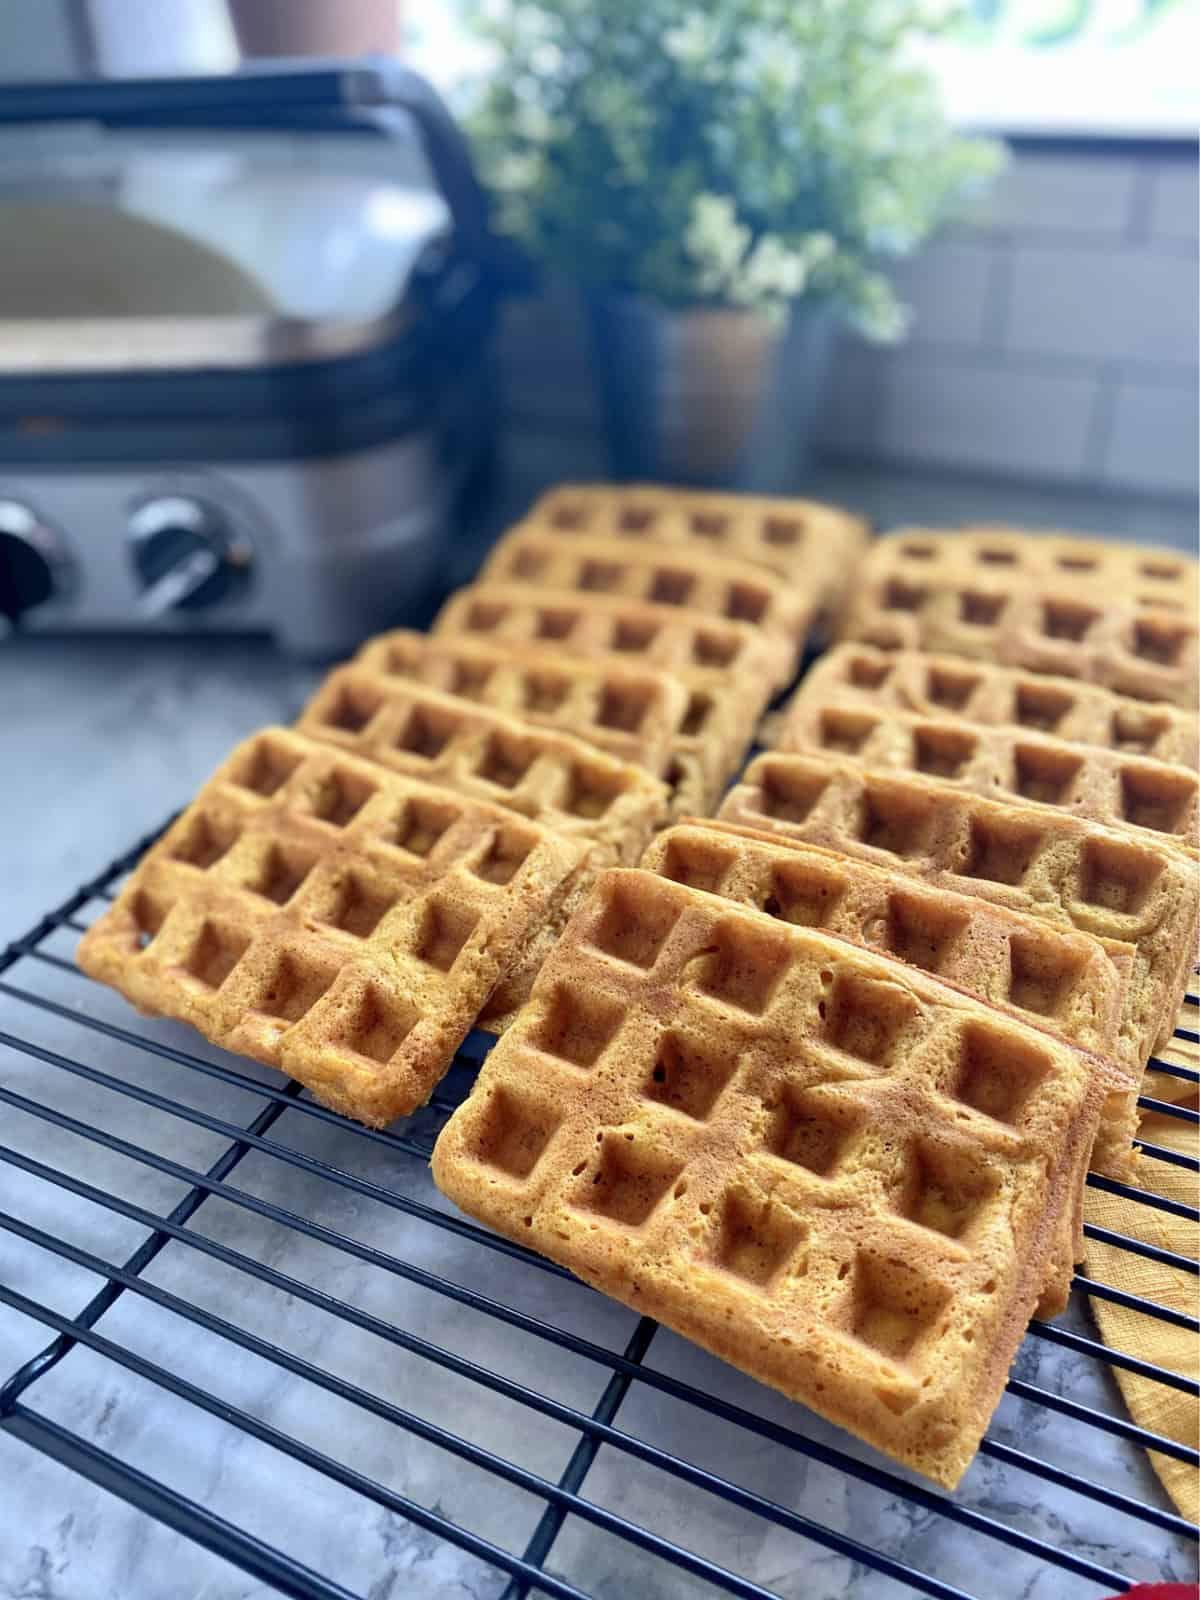 Rectangular waffles stacked on a black wire rack.